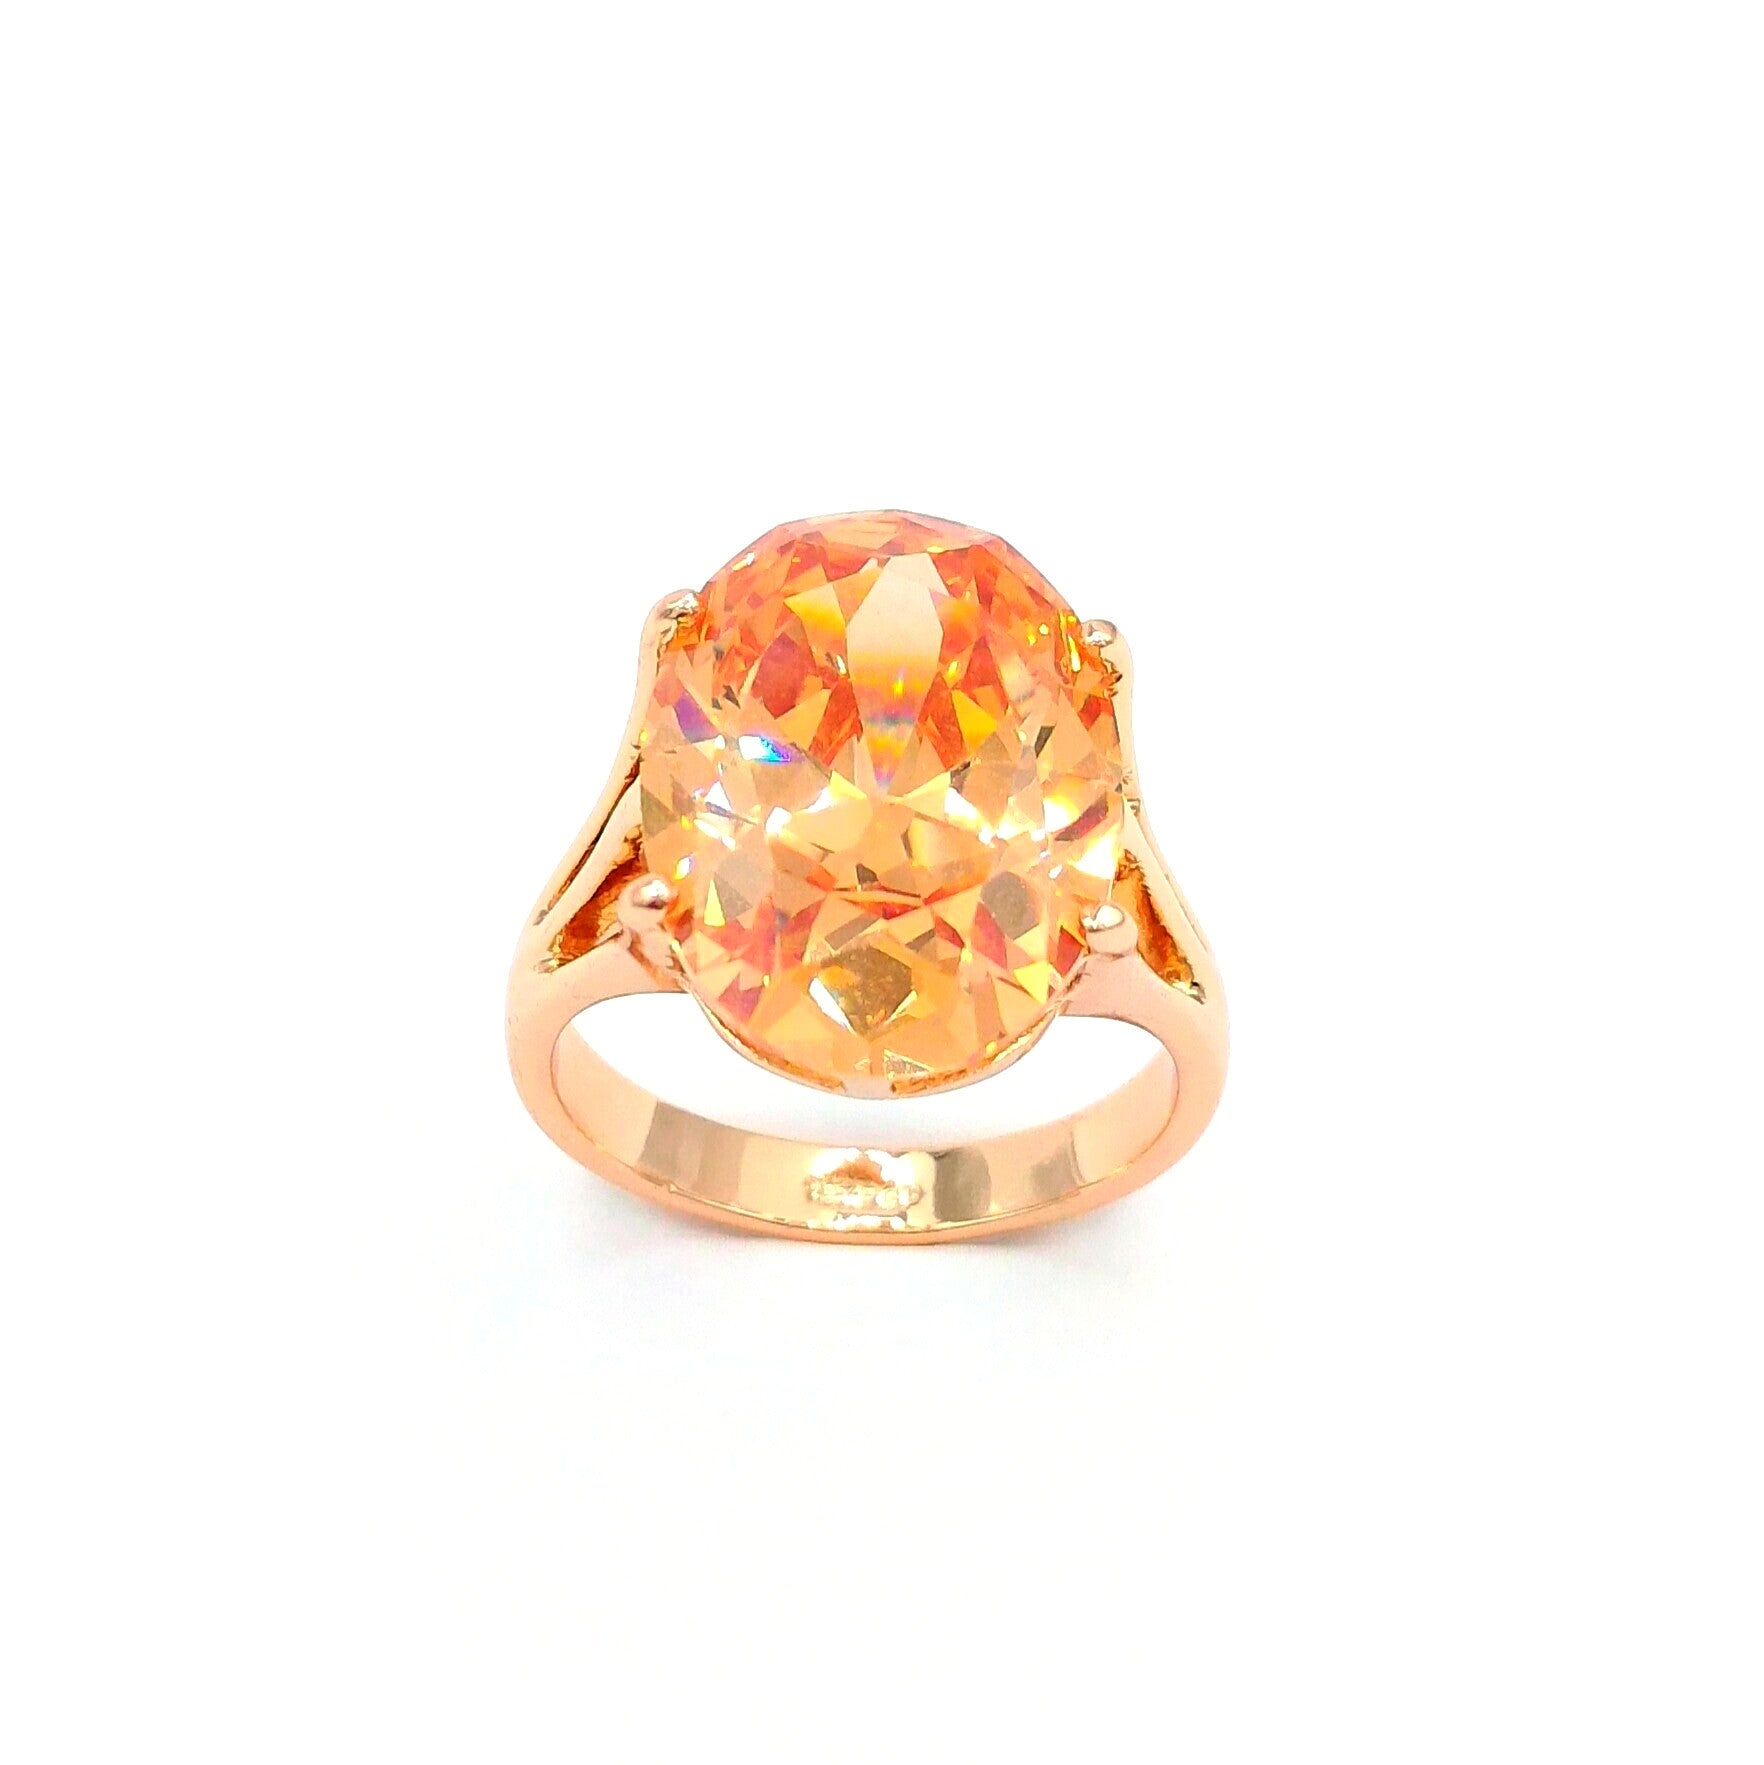 amber imagine white ellip ring gold diamonds w engagement rings pave products